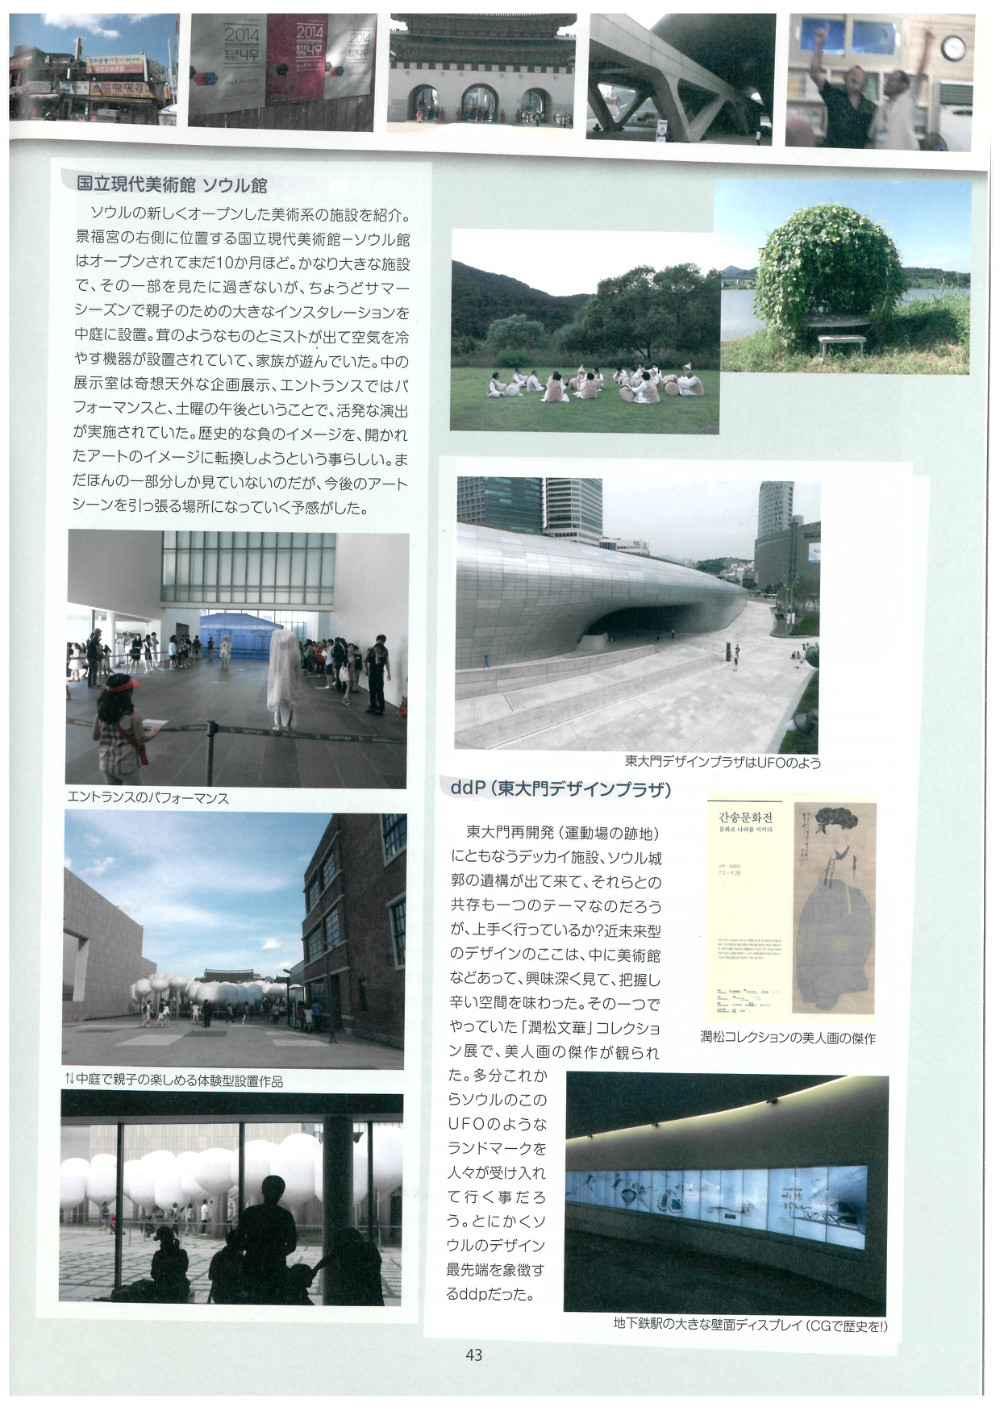 일본_ART MOVEMENT_2015.03(42-43p)_p.43.jpg